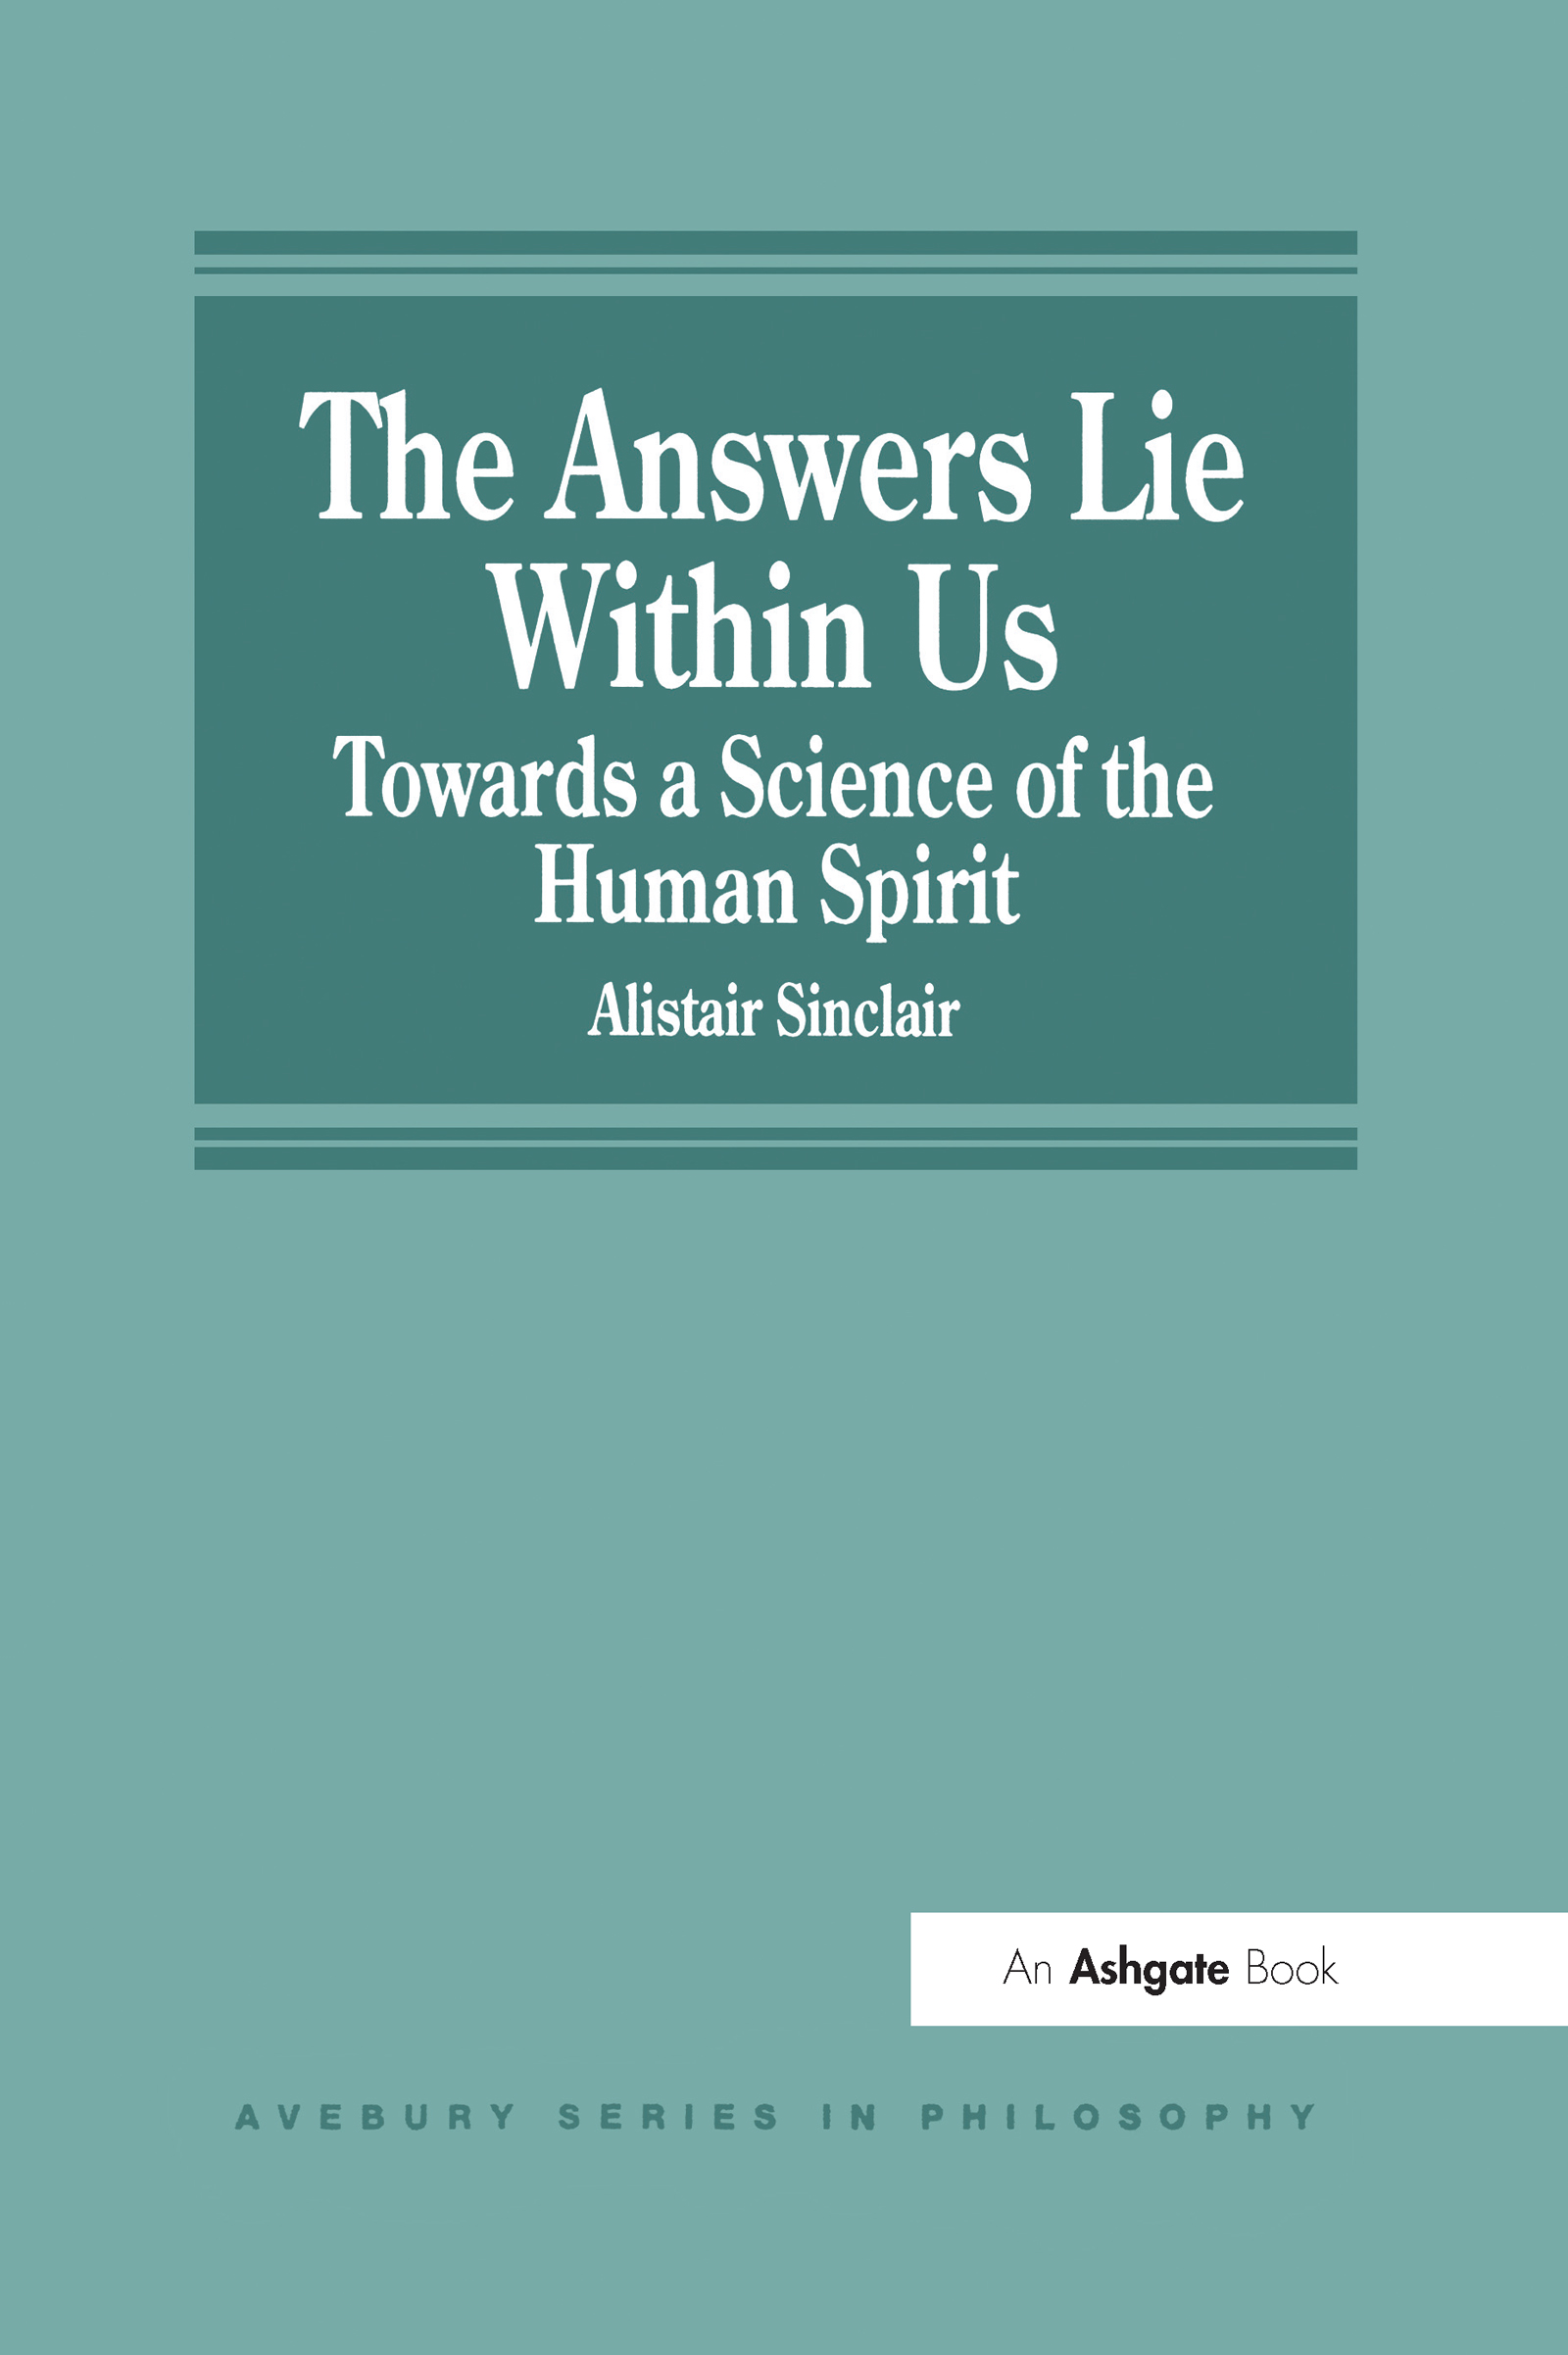 The Answers Lie Within Us: Towards a Science of the Human Spirit book cover